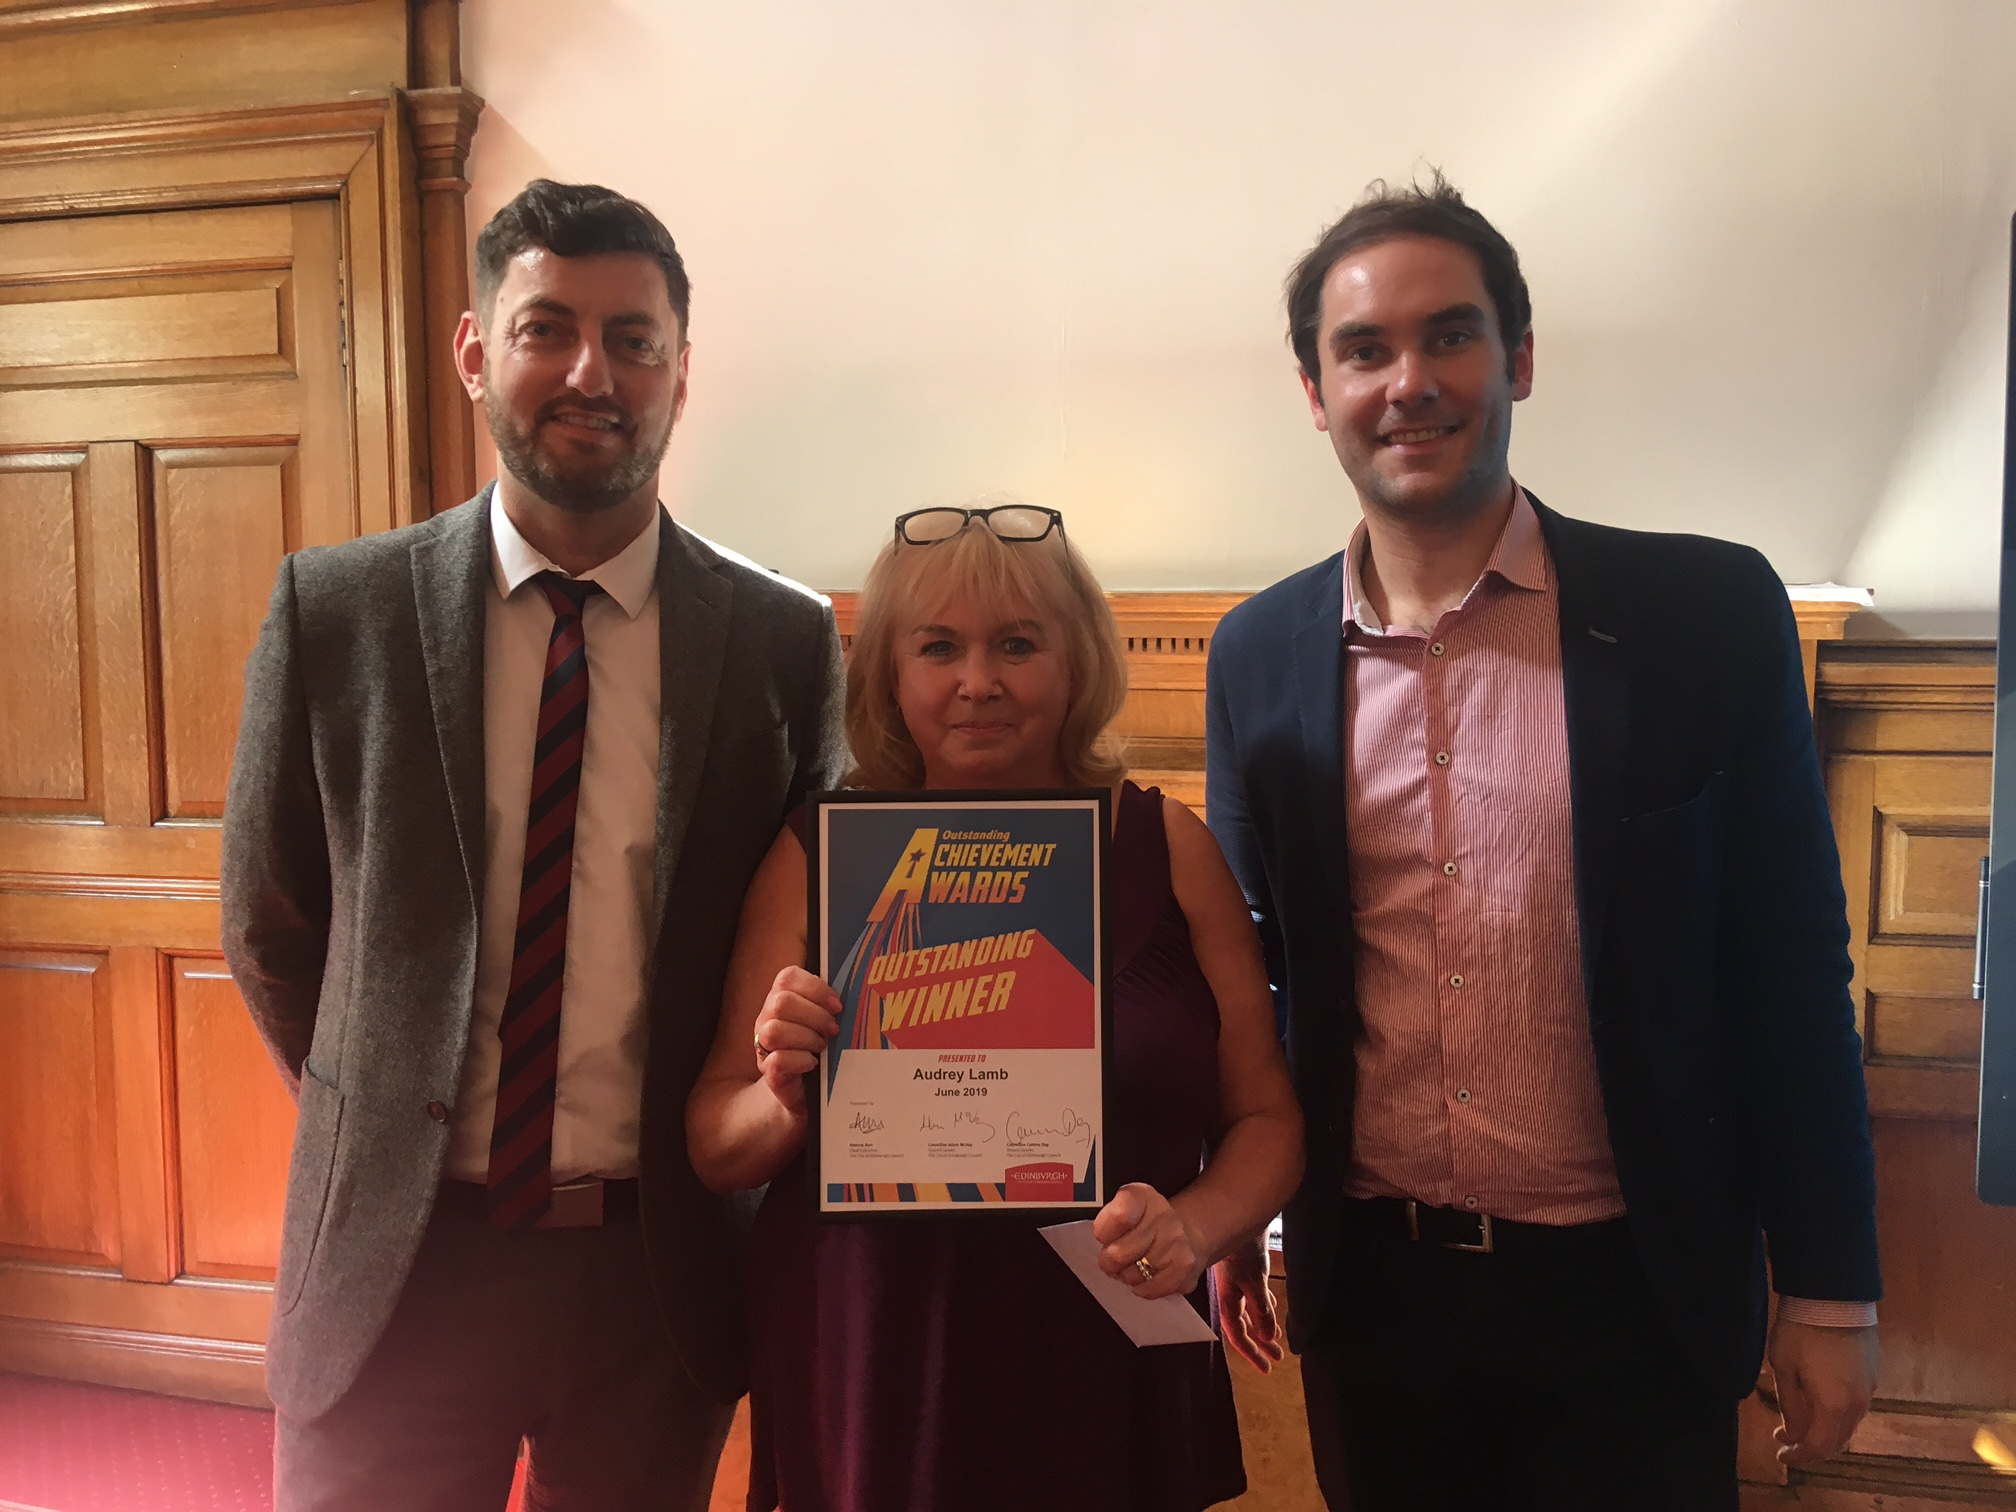 Outstanding Achievement Award For Foster Carer Audrey